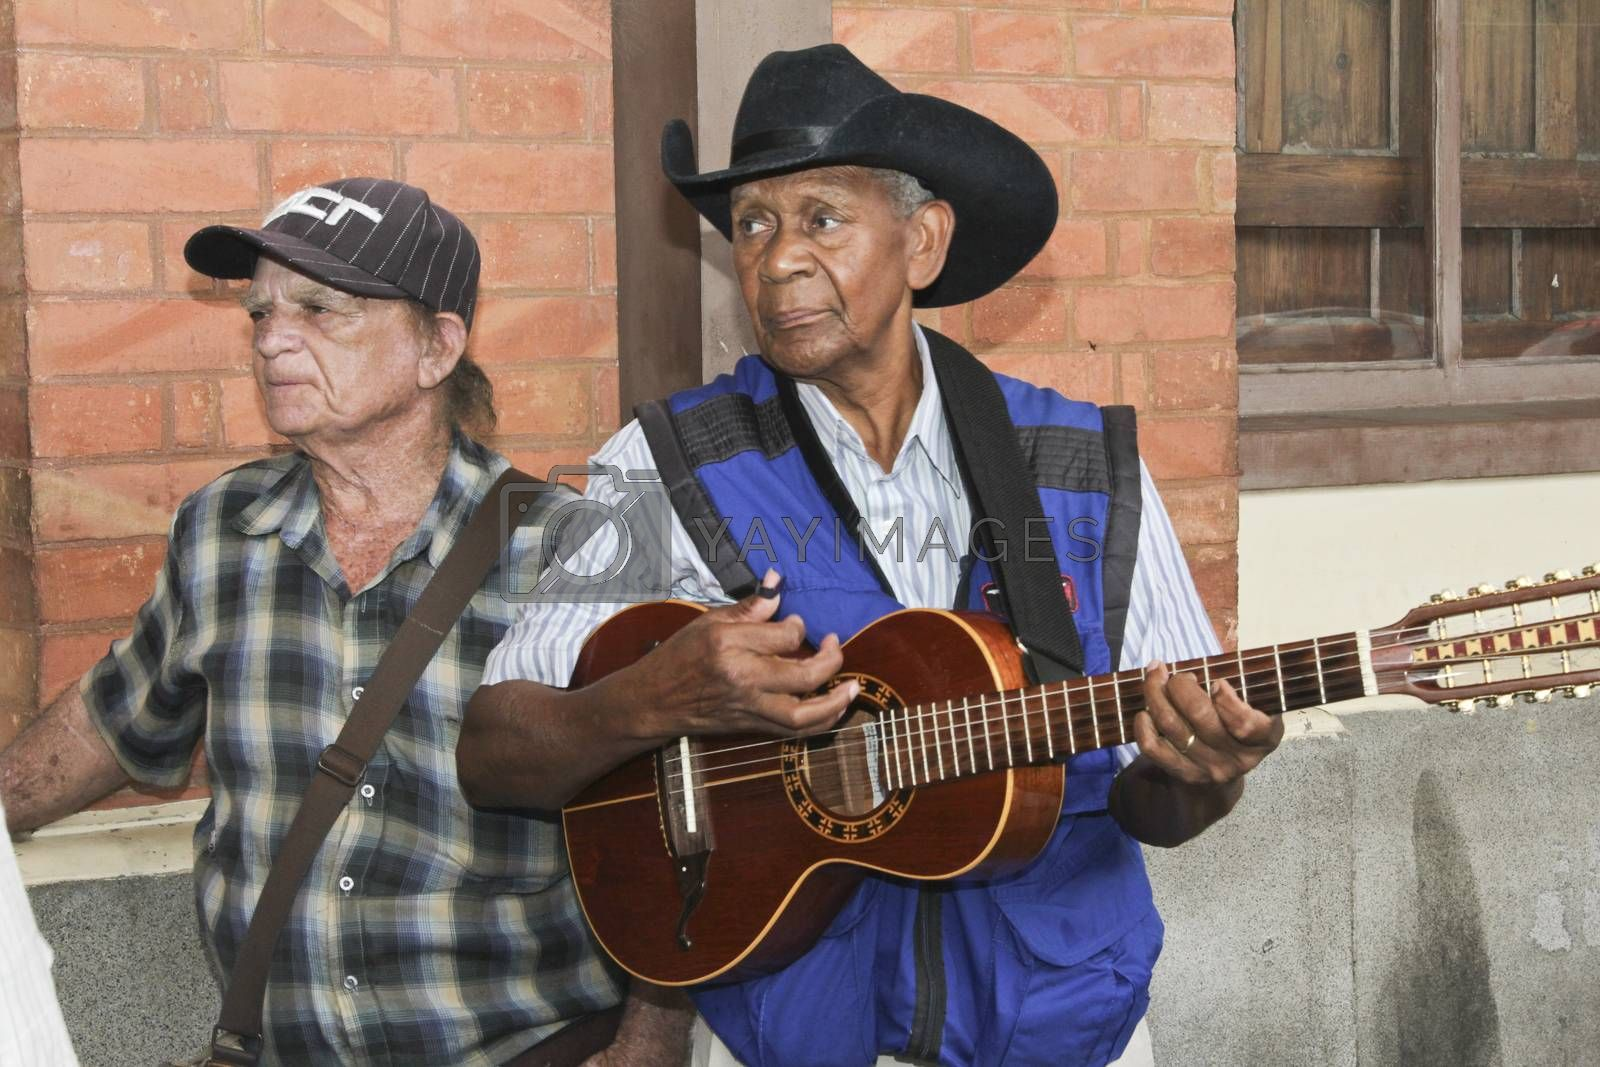 SAO PAULO, BRAZIL - MARCH 8, 2015: An unidentified group of men playing guitar and singing country musics in front of Luz Station on Sao Paulo Brazil.